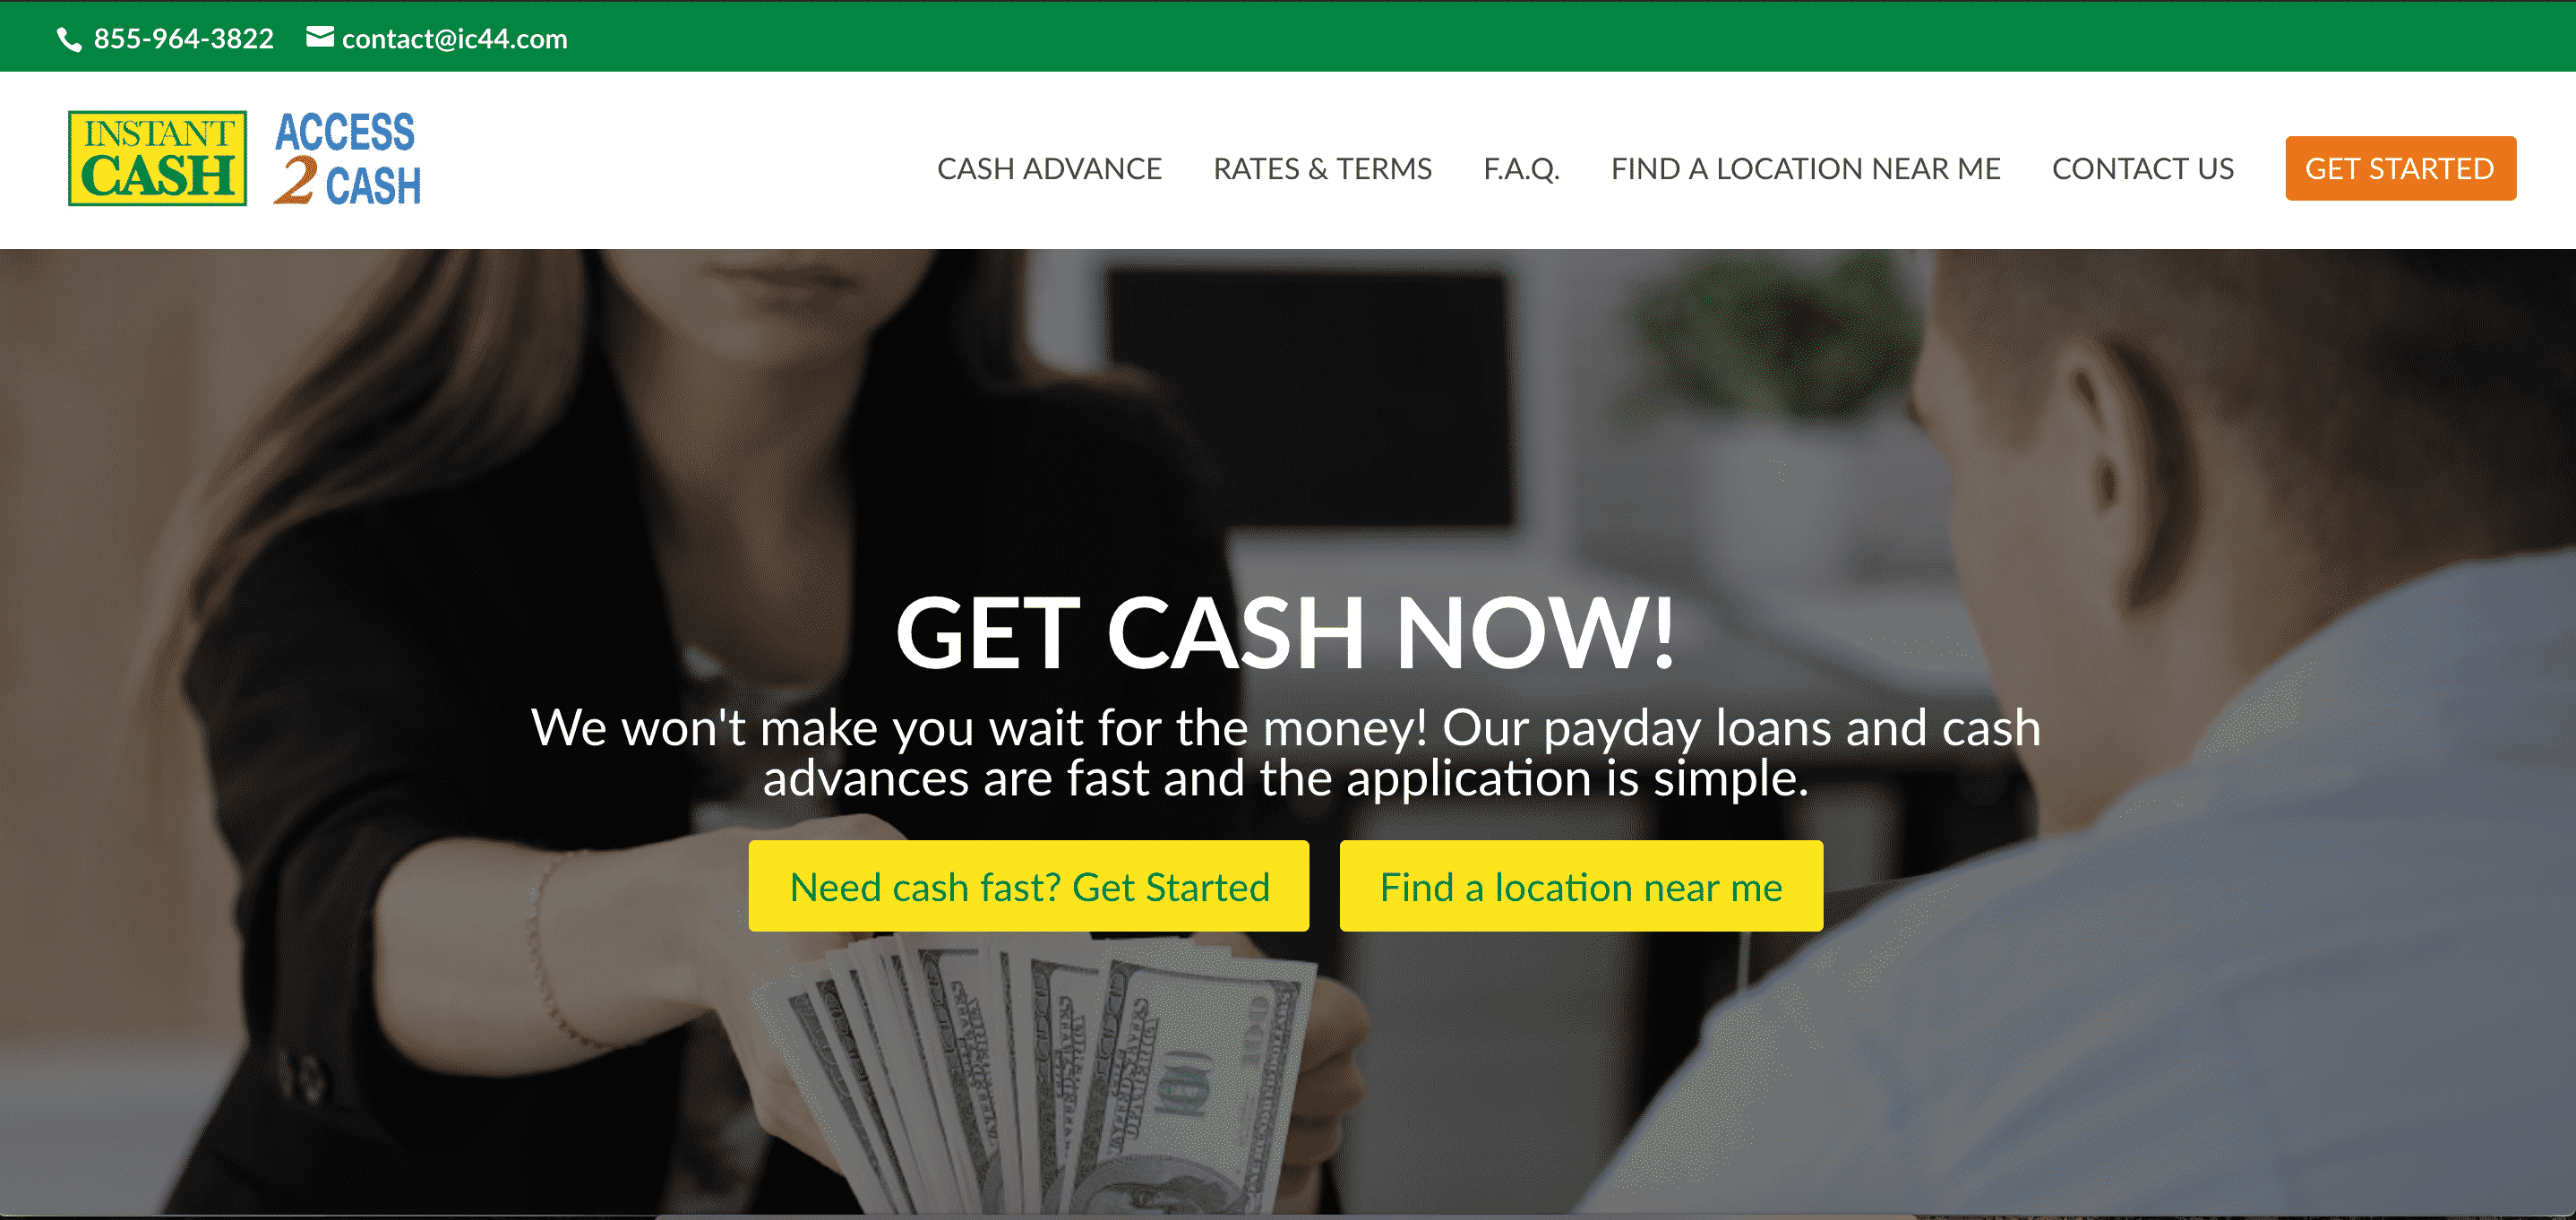 Instant Cash & Access 2 Cash Home Page